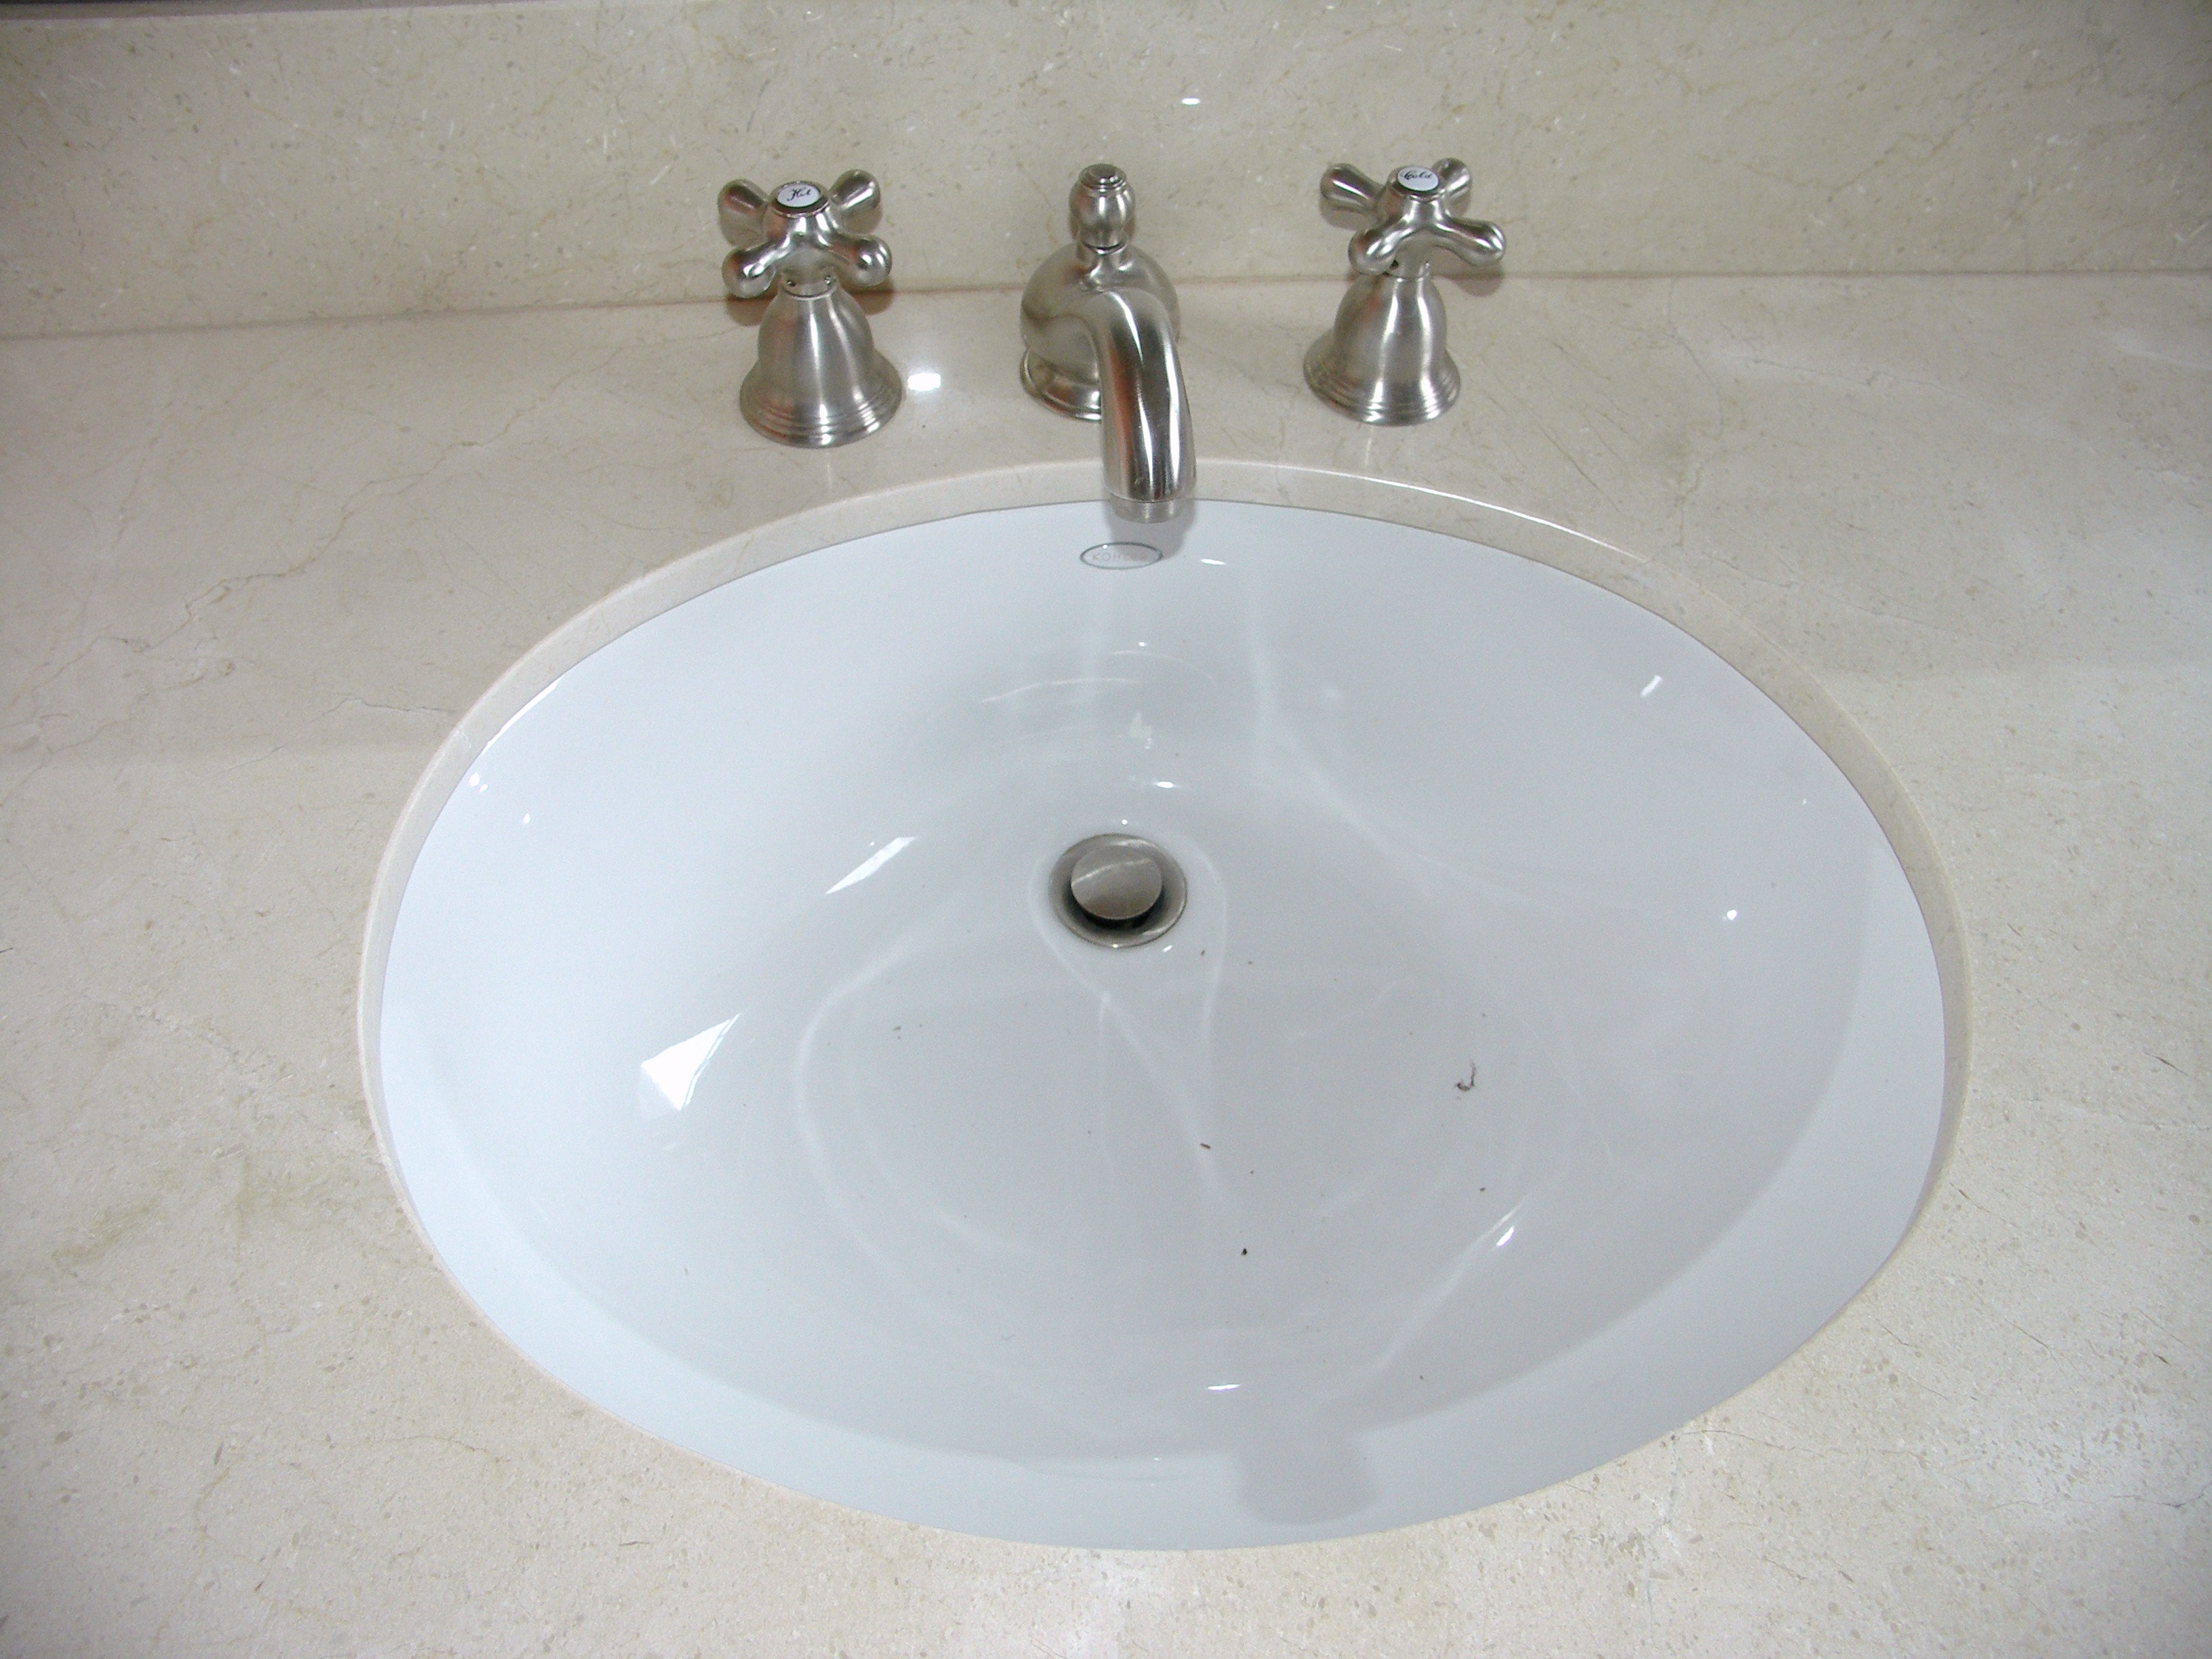 Undermount Bathroom Sink : Fabulous Undermount Bathroom Sinks 3264 x 2448 ? 1328 kB ? jpeg